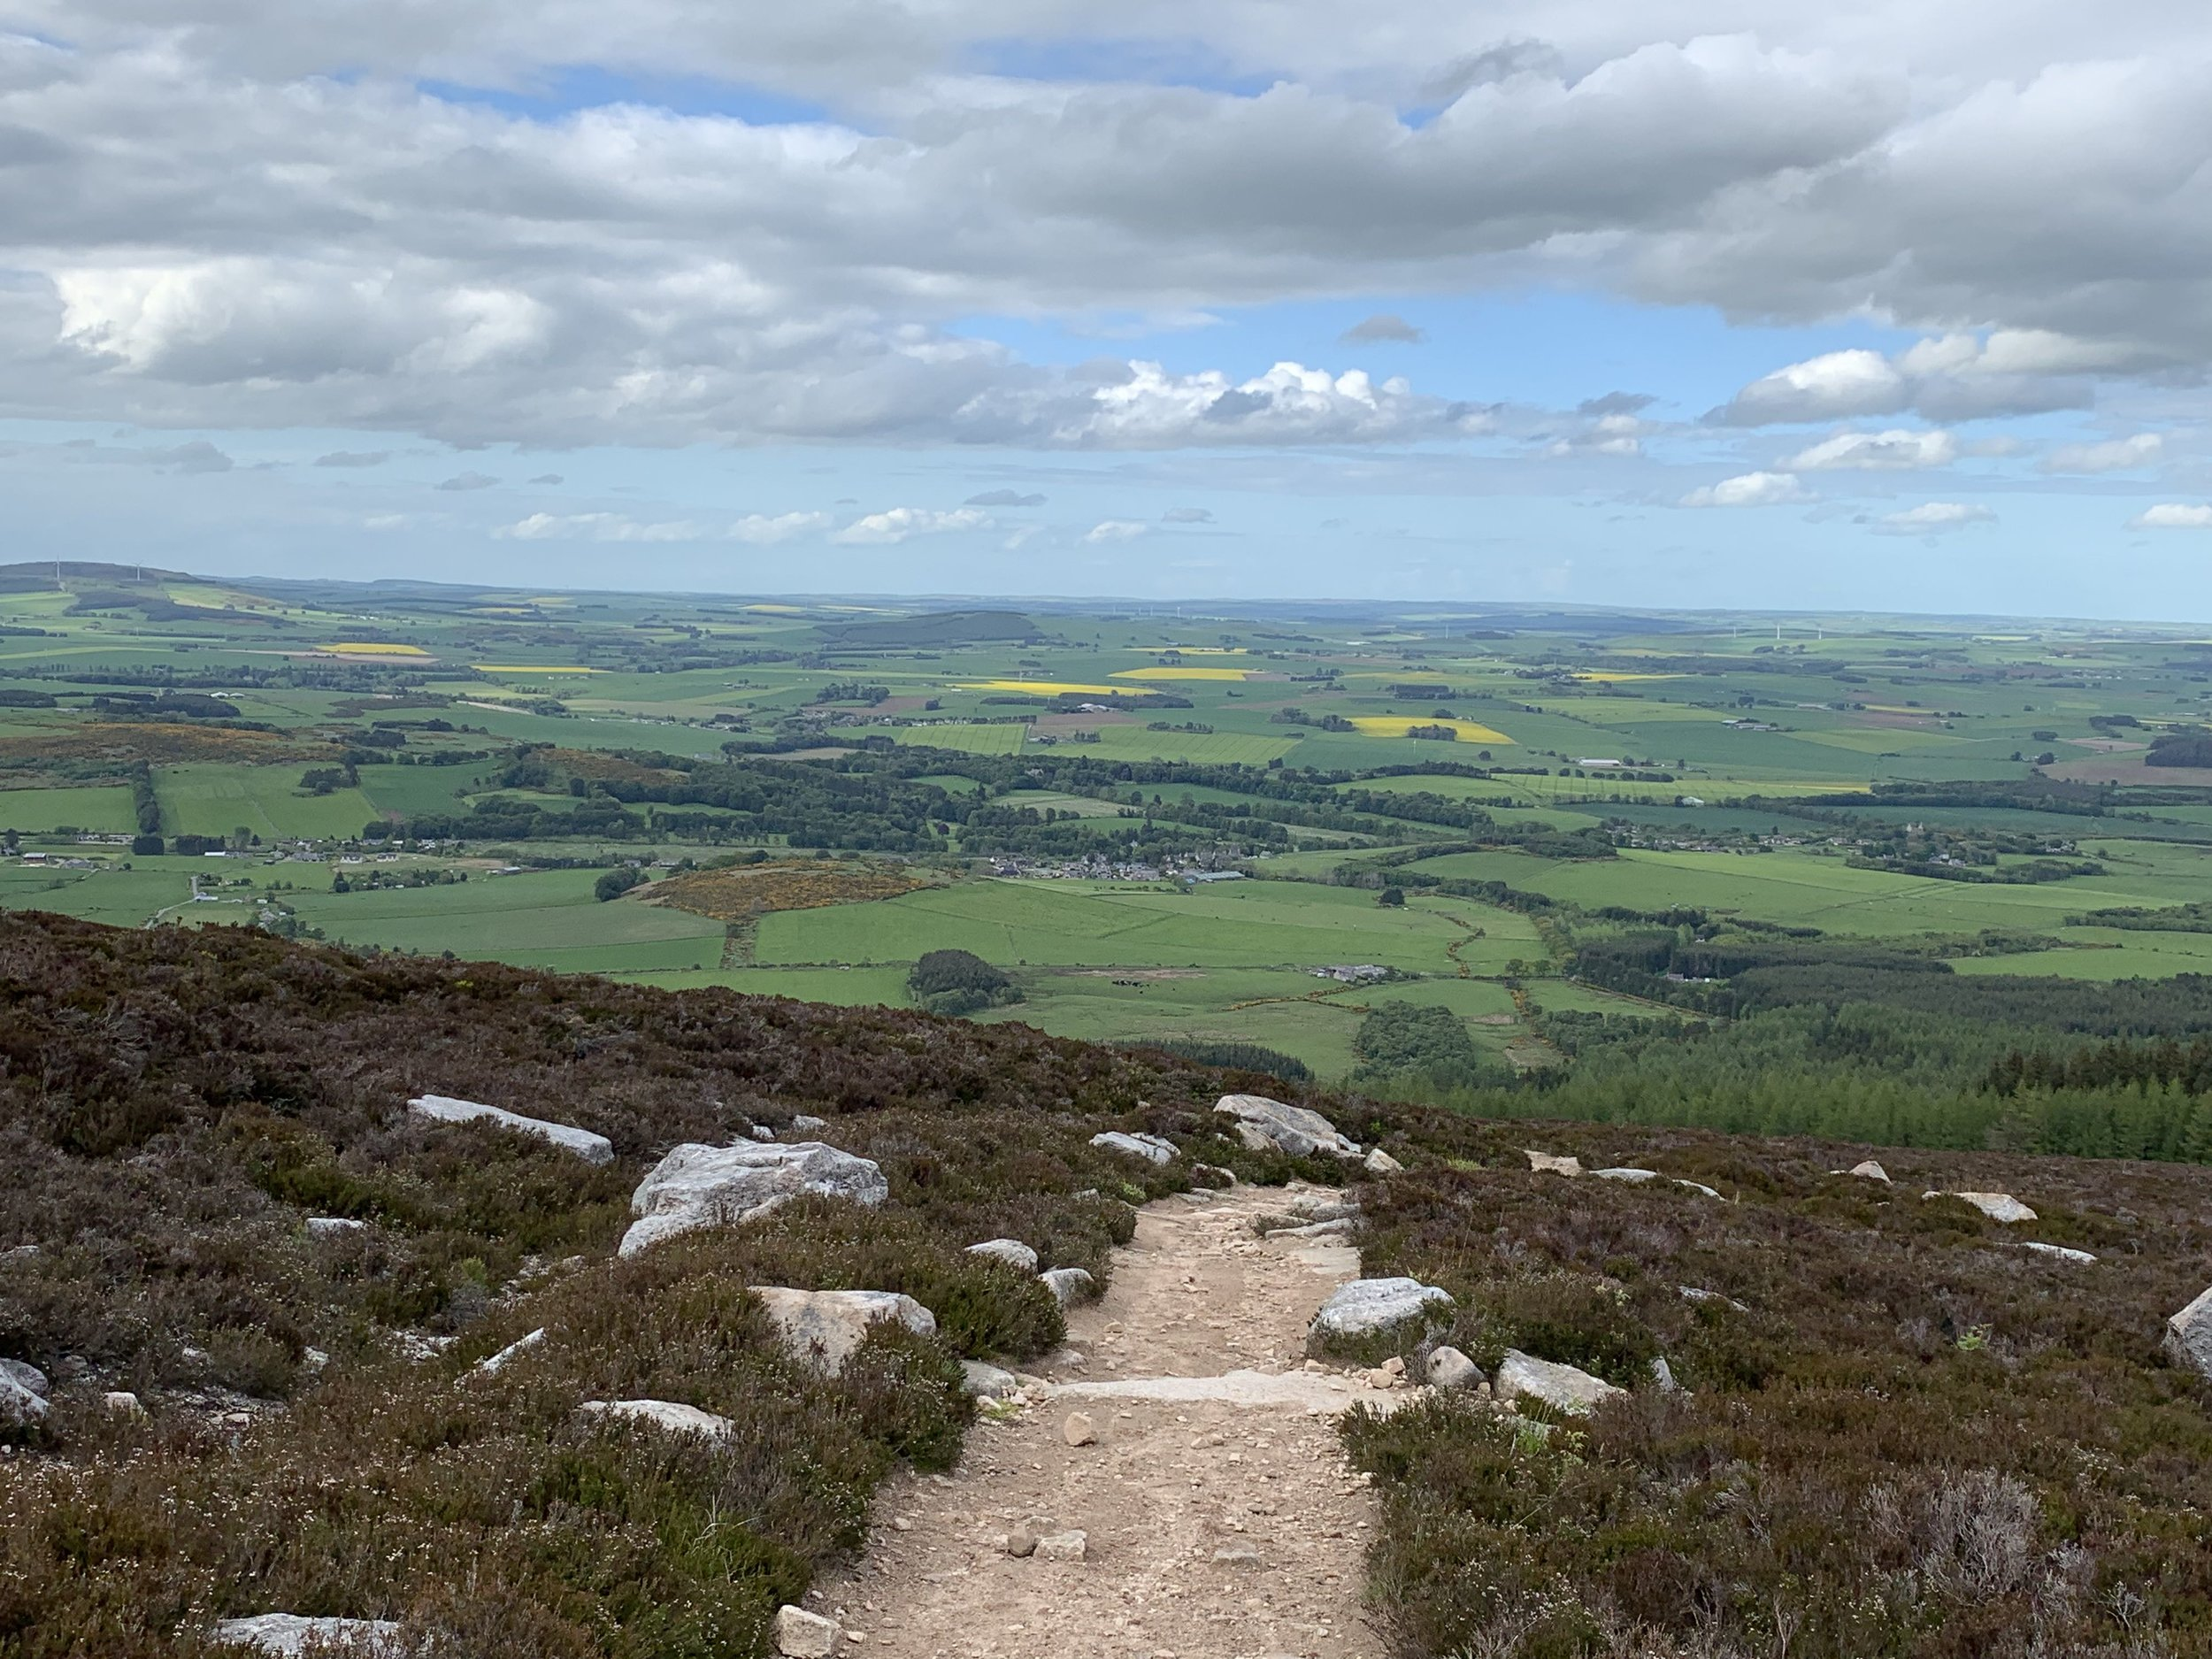 View from the top of Bennachie in Aberdeenshire, Scotland. Photo by Paul Vasile